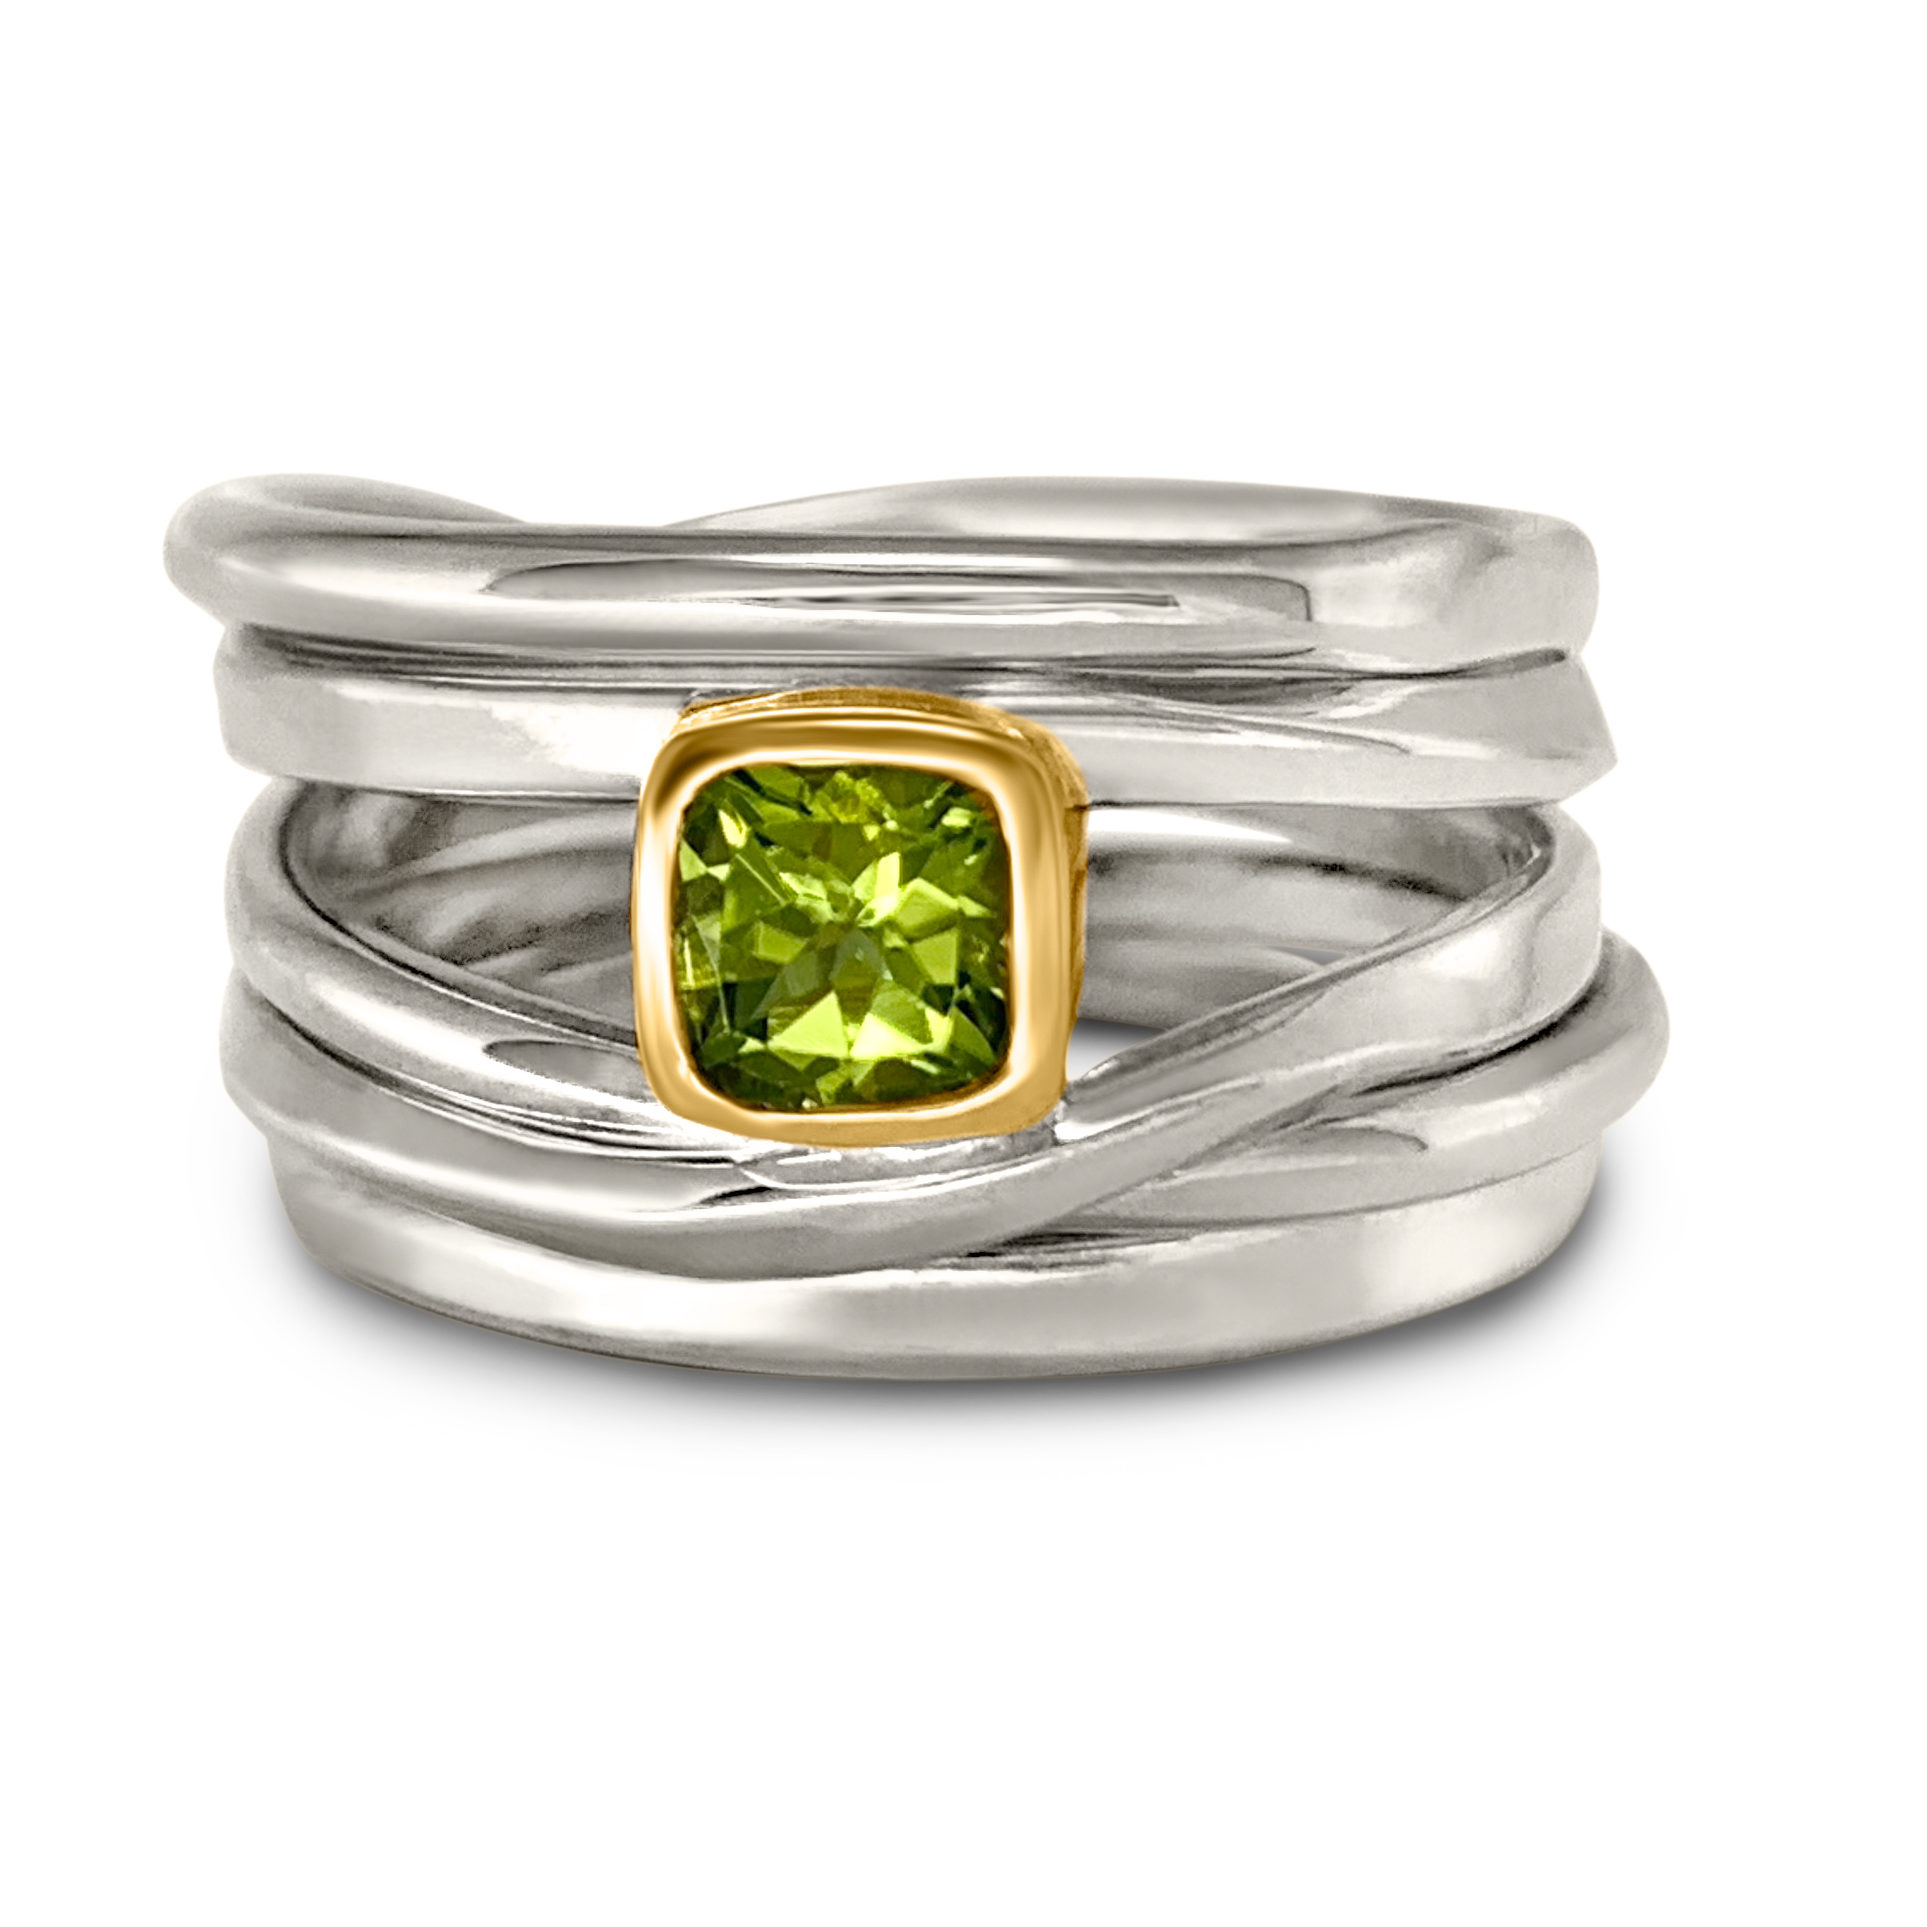 One-of-a-Kind #180 || Sterling Onefooter Ring with 0.6ct Cushion cut Peridot set in 18k Yellow-Gold Bezel, Size 10.25